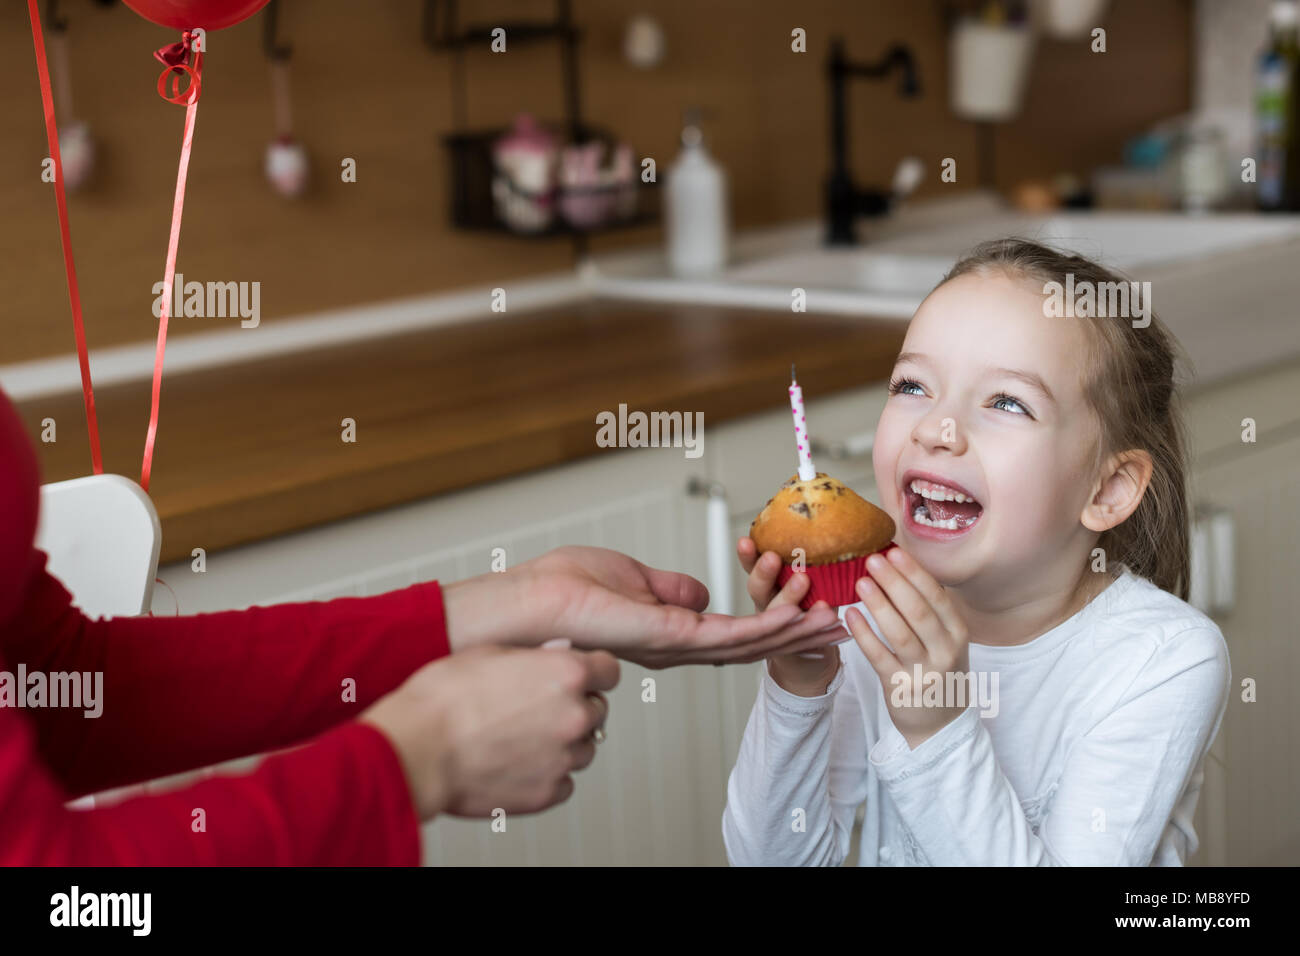 Cute preschooler girl celebrating 6th birthday. Mother giving daughter birthday cupcake with a candle. Childrens birthday party concept. - Stock Image